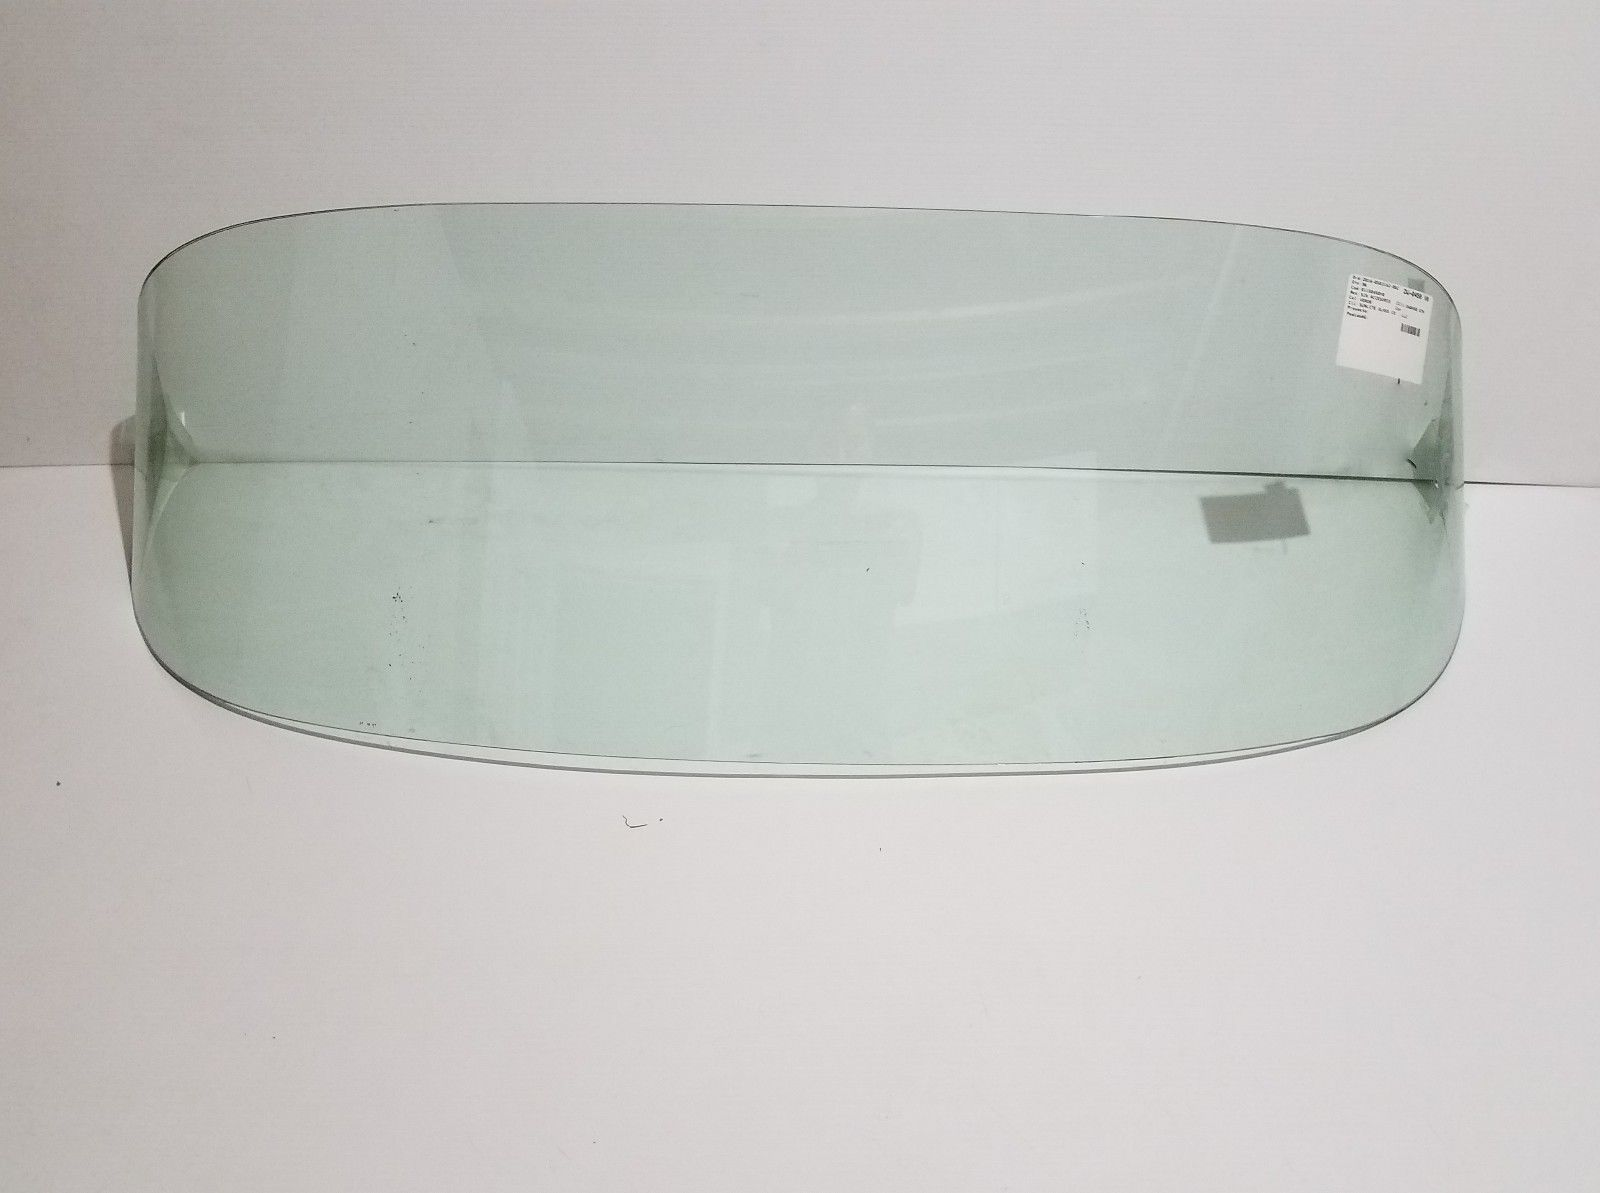 1956 - 1962 Chevrolet Corvette Windshield, LOF